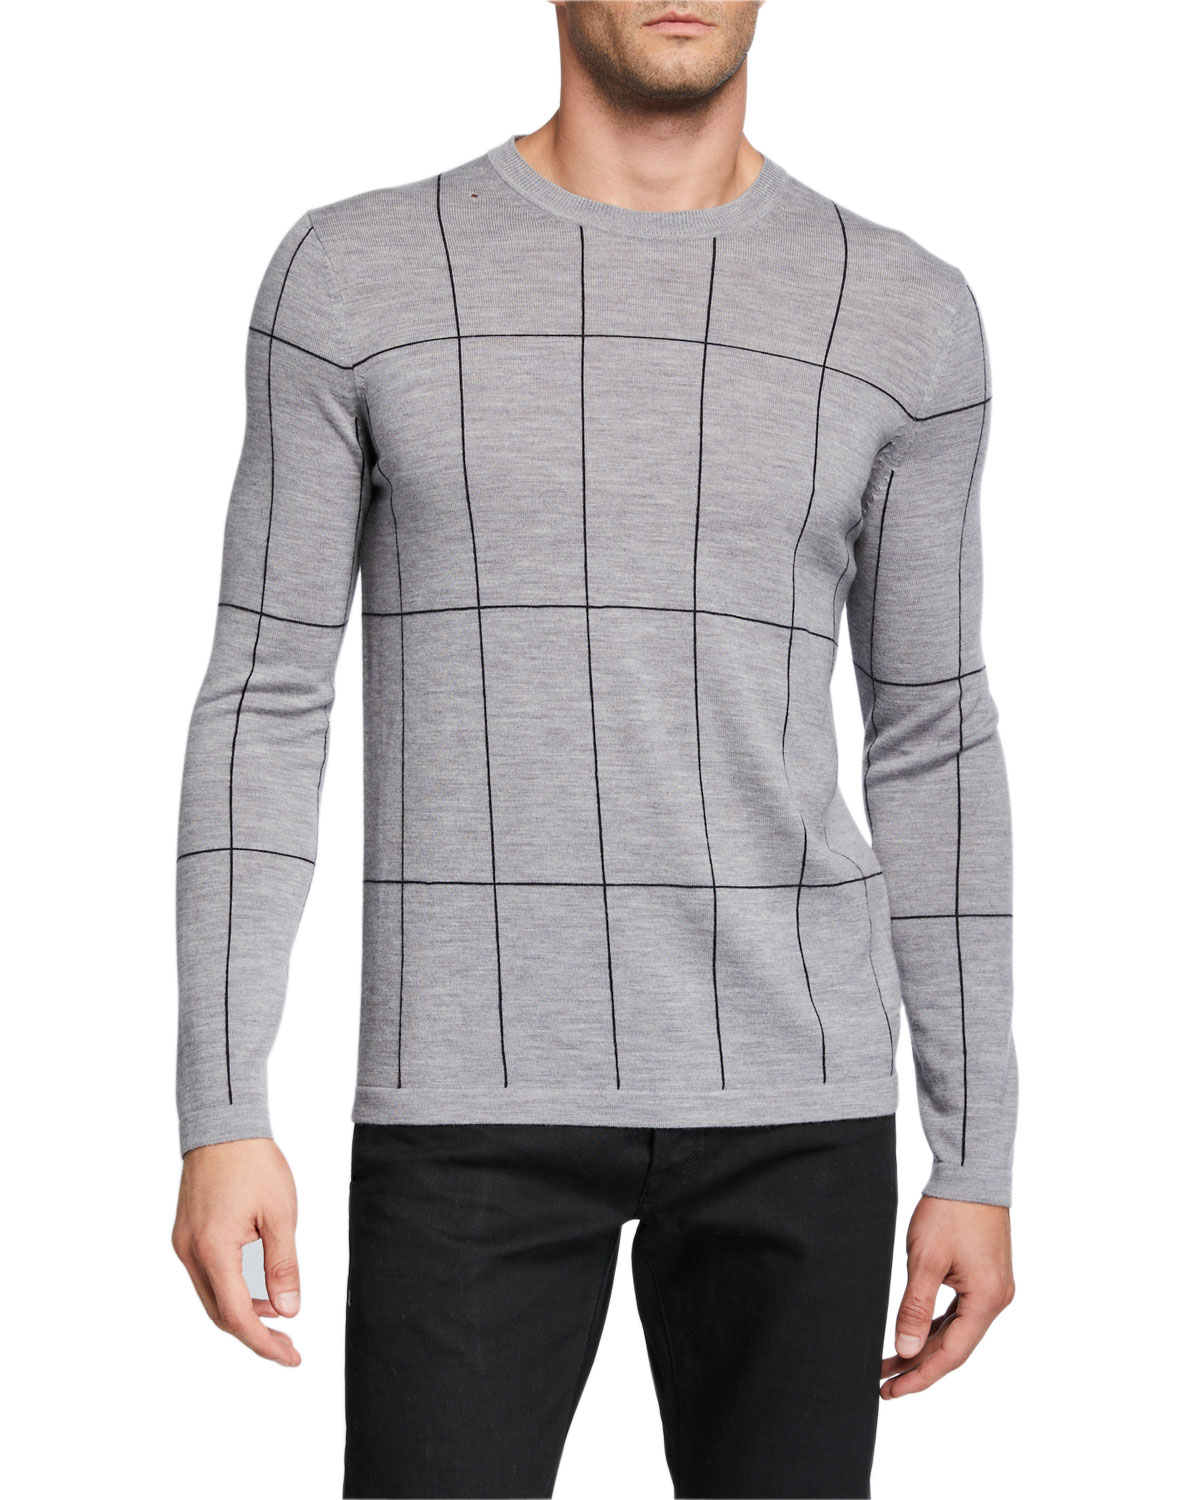 Theory Sweaters MEN'S MALIO MILOS GRID CHECK SWEATER